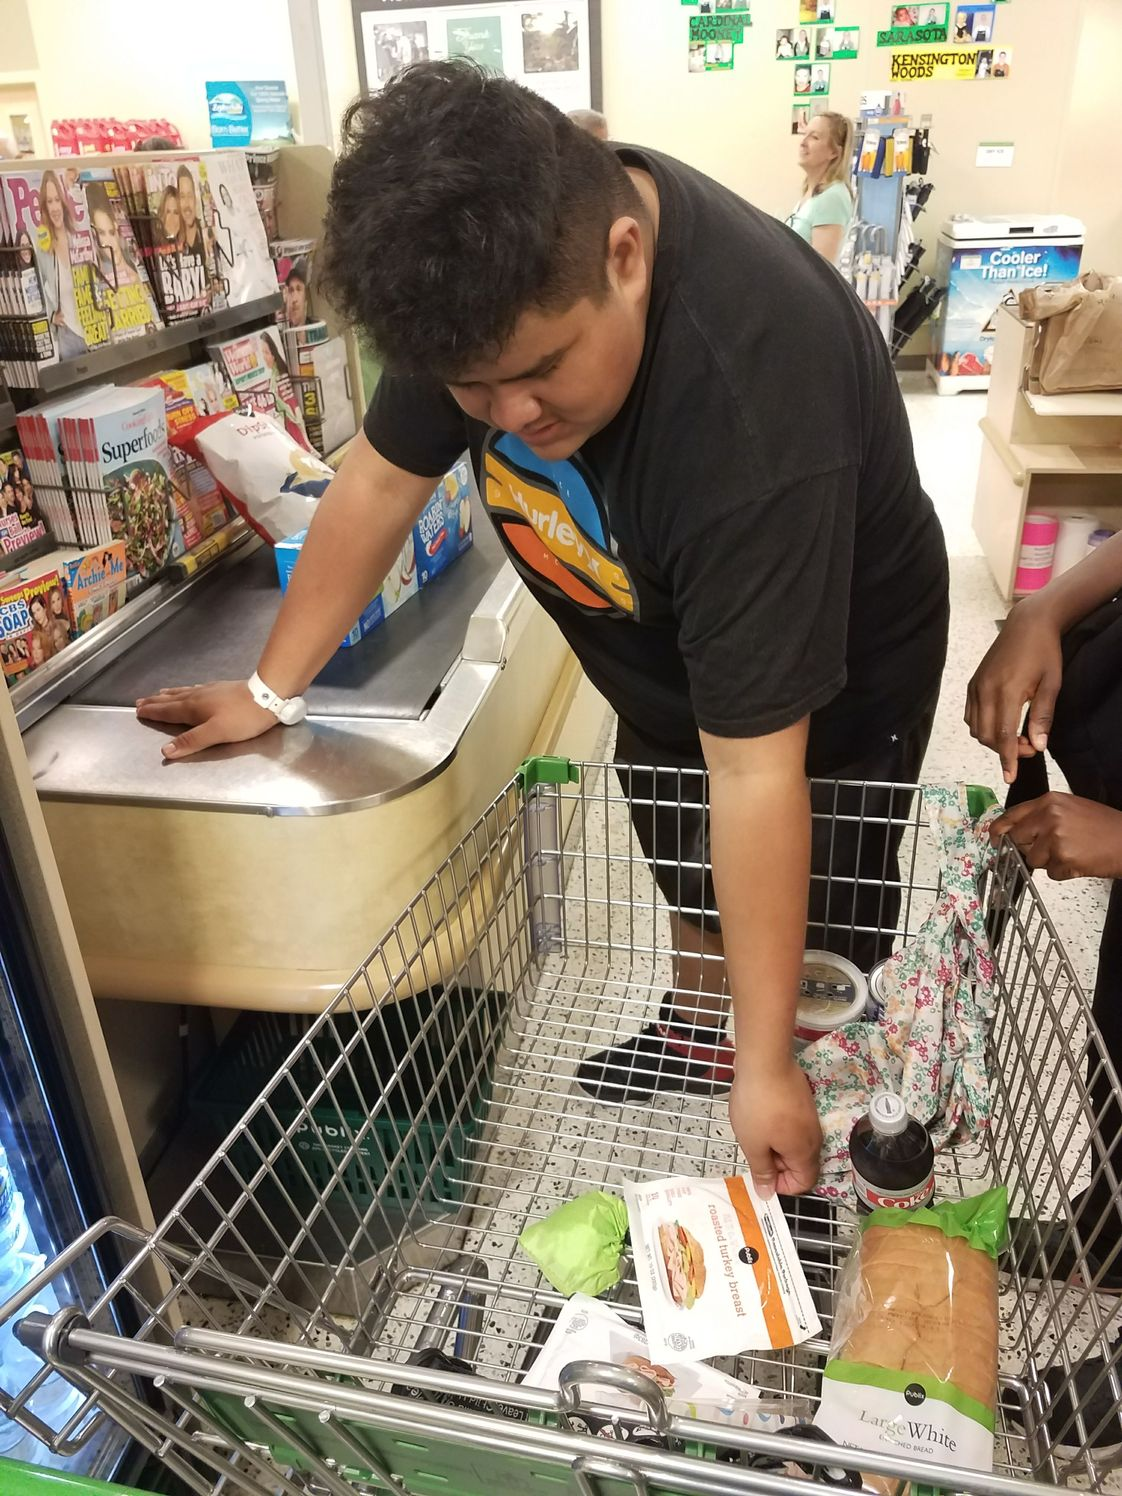 Beyond The Spectrum Education Center Photo #1 - Grocery store field trip to learn life skills!